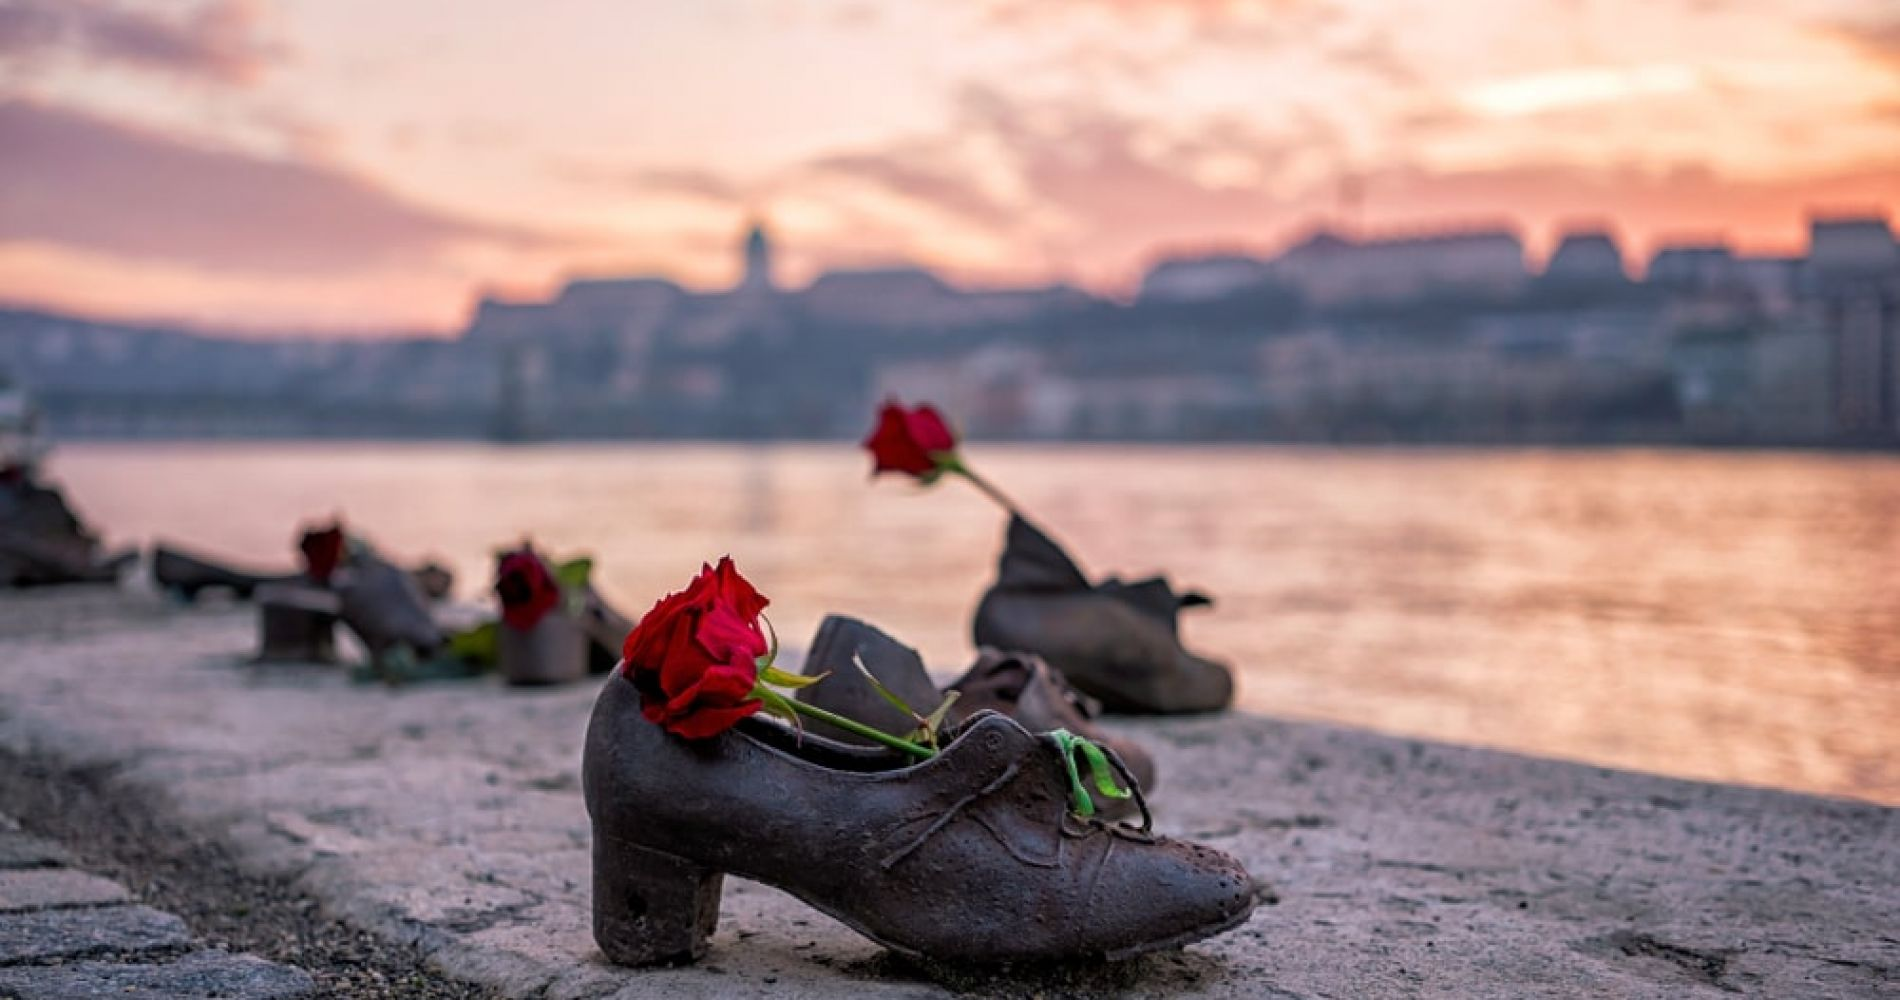 Visit the Shoes on the Danube Bank memorial in Budapest